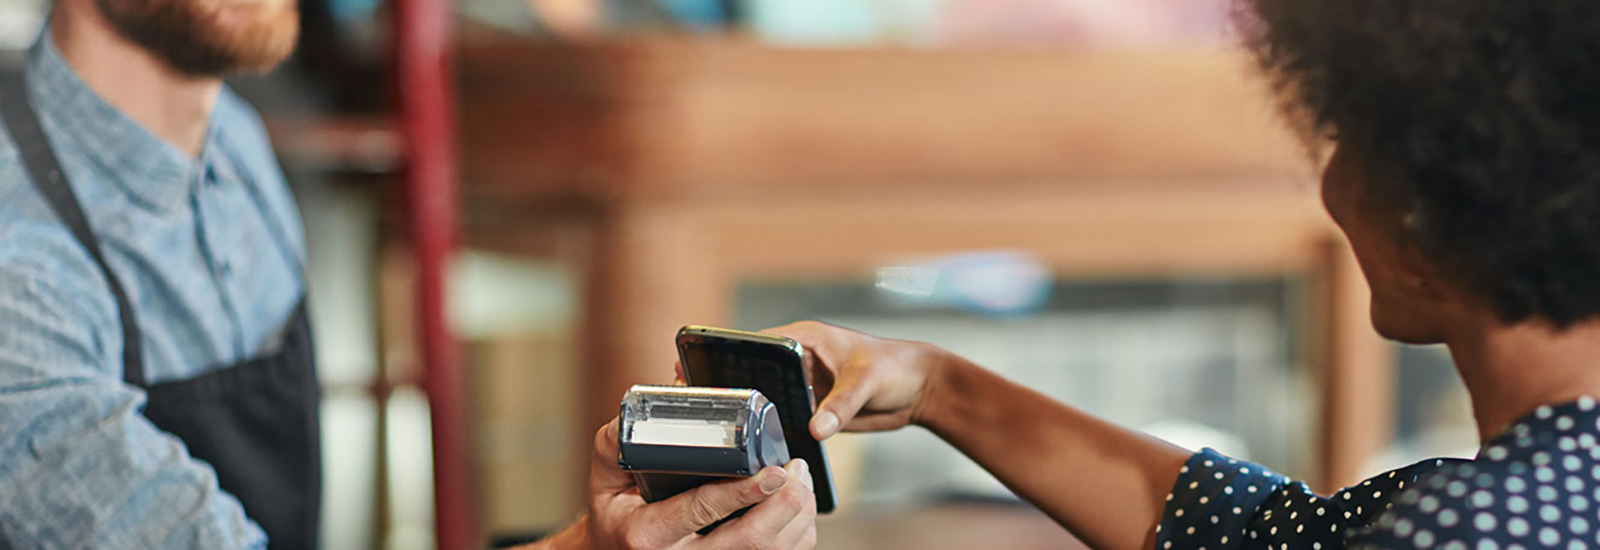 Woman paying with phone